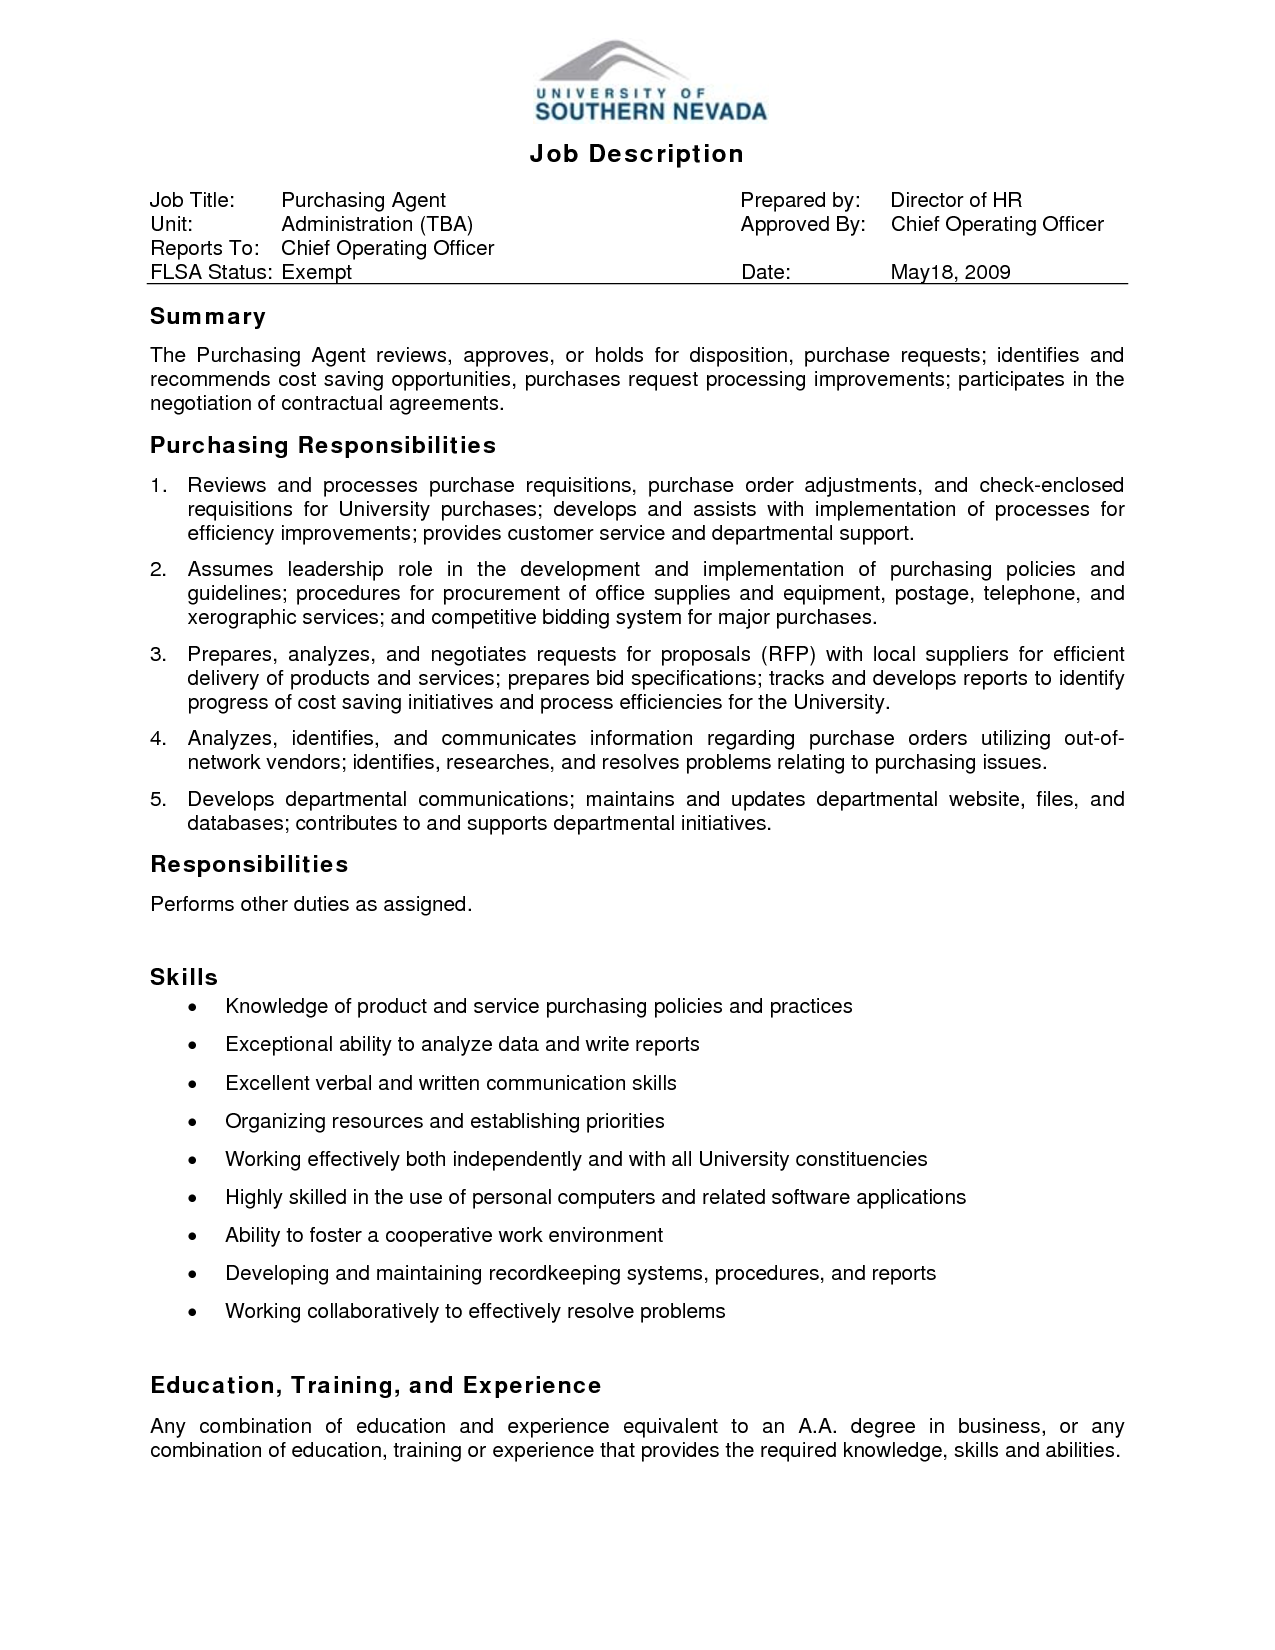 Perfect Administrative Assistant Duties Cover Letter Job Description Administrative  Assistant